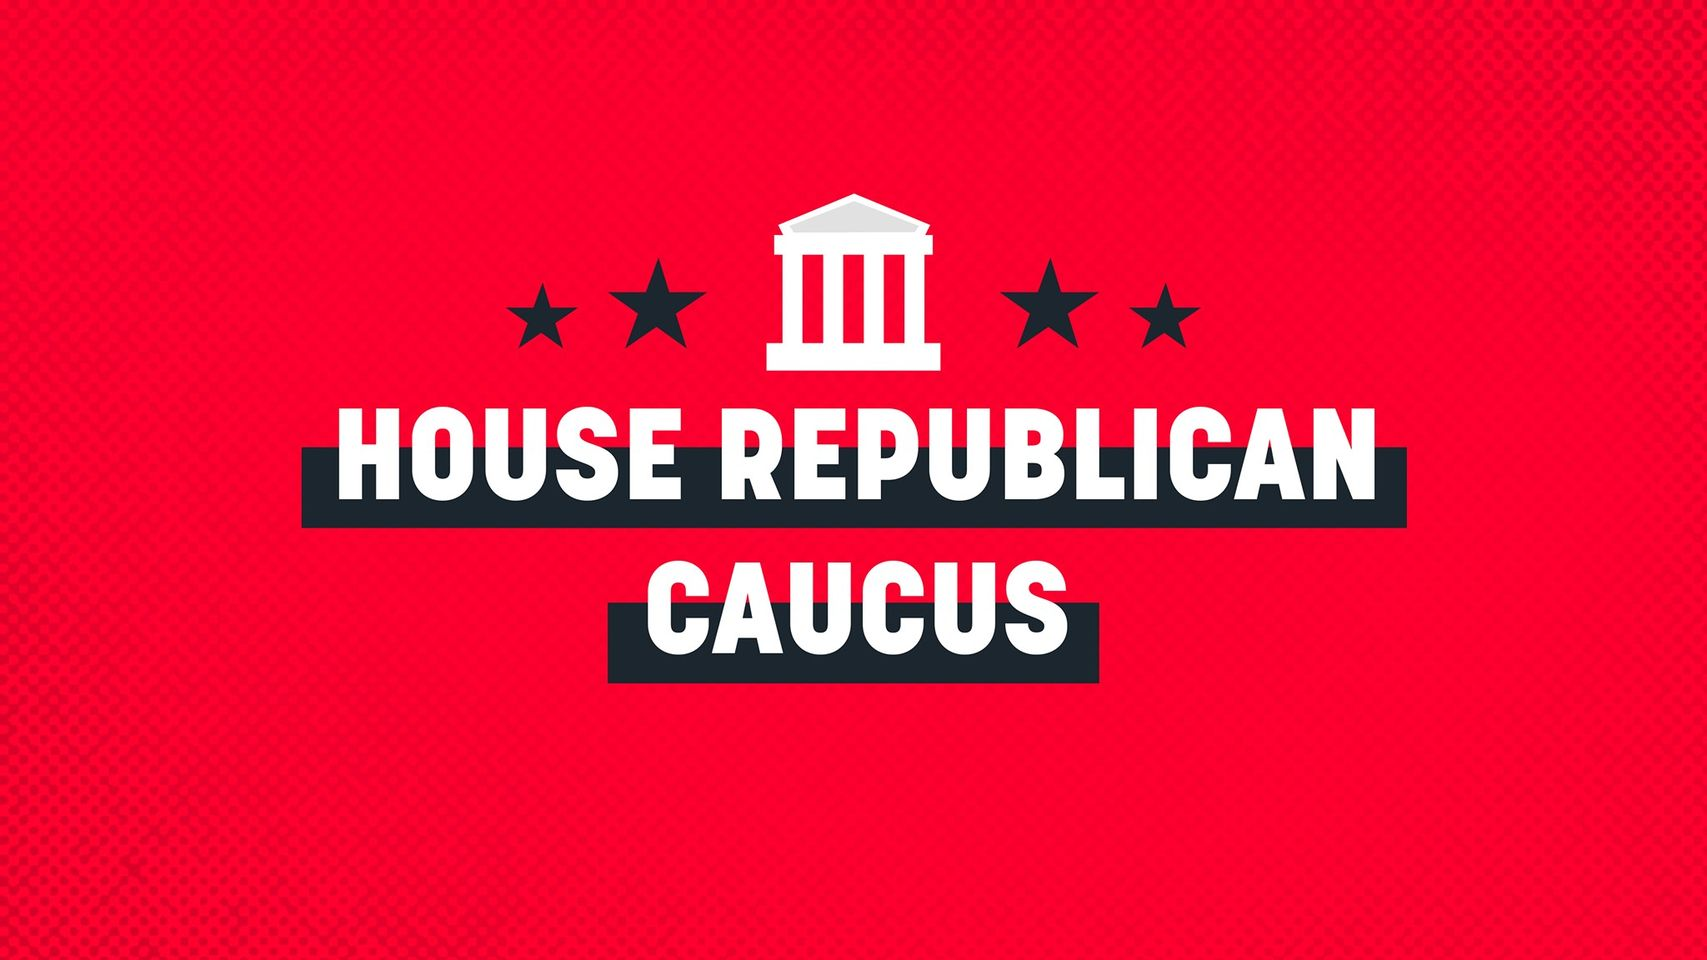 Maryland House Republican Caucus